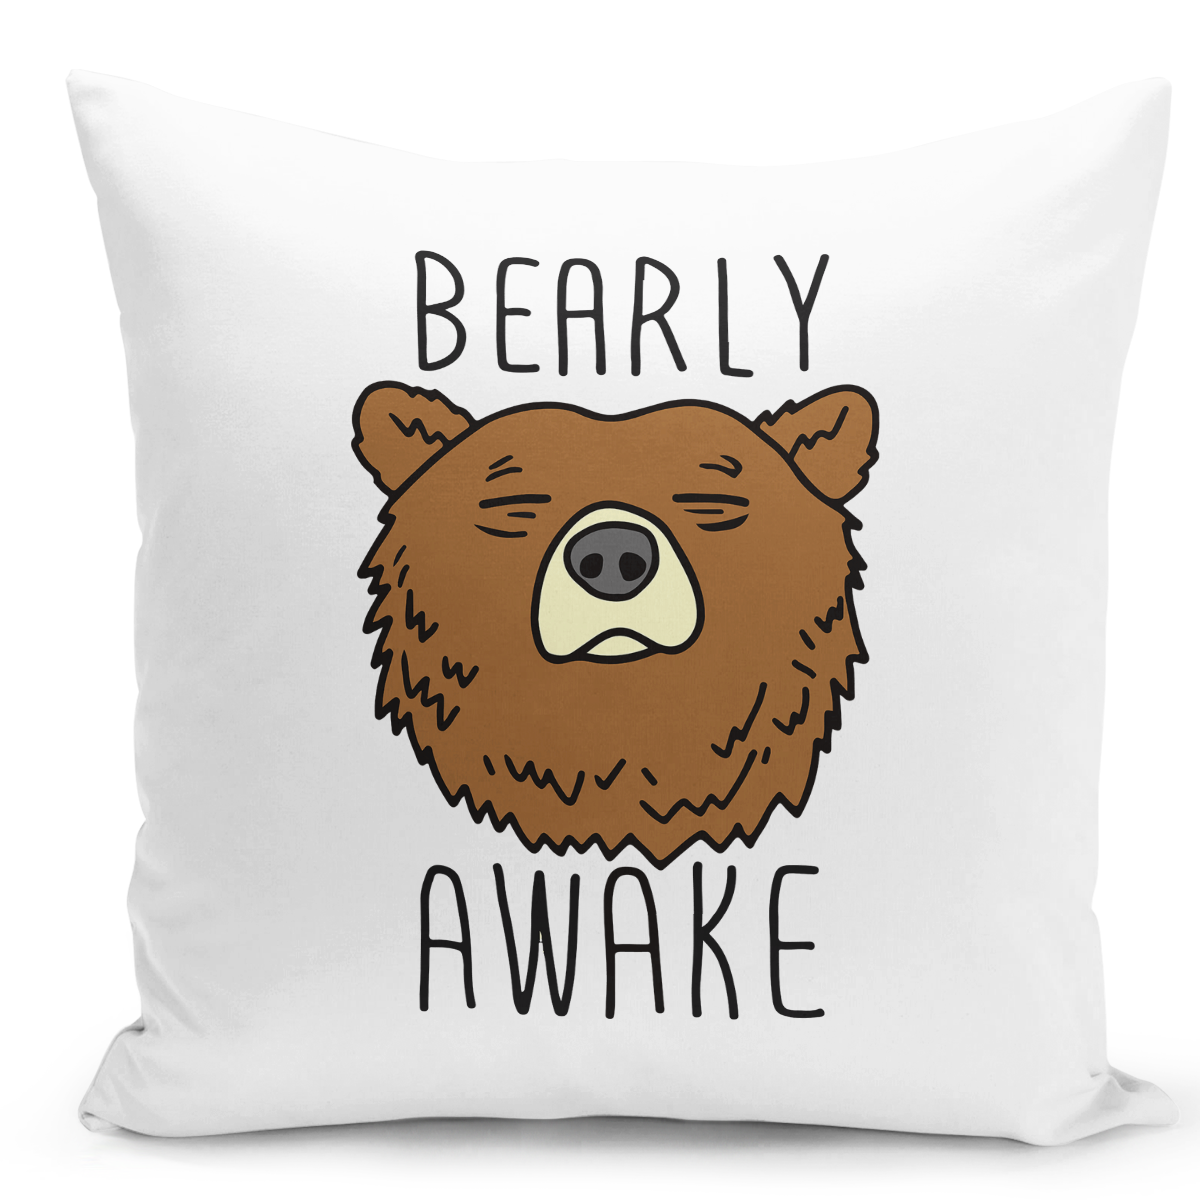 16x16-inch-Throw-Pillow-for-Home-Decor-with-Stuffing-Bearly-Awake-Grizly-Bear-